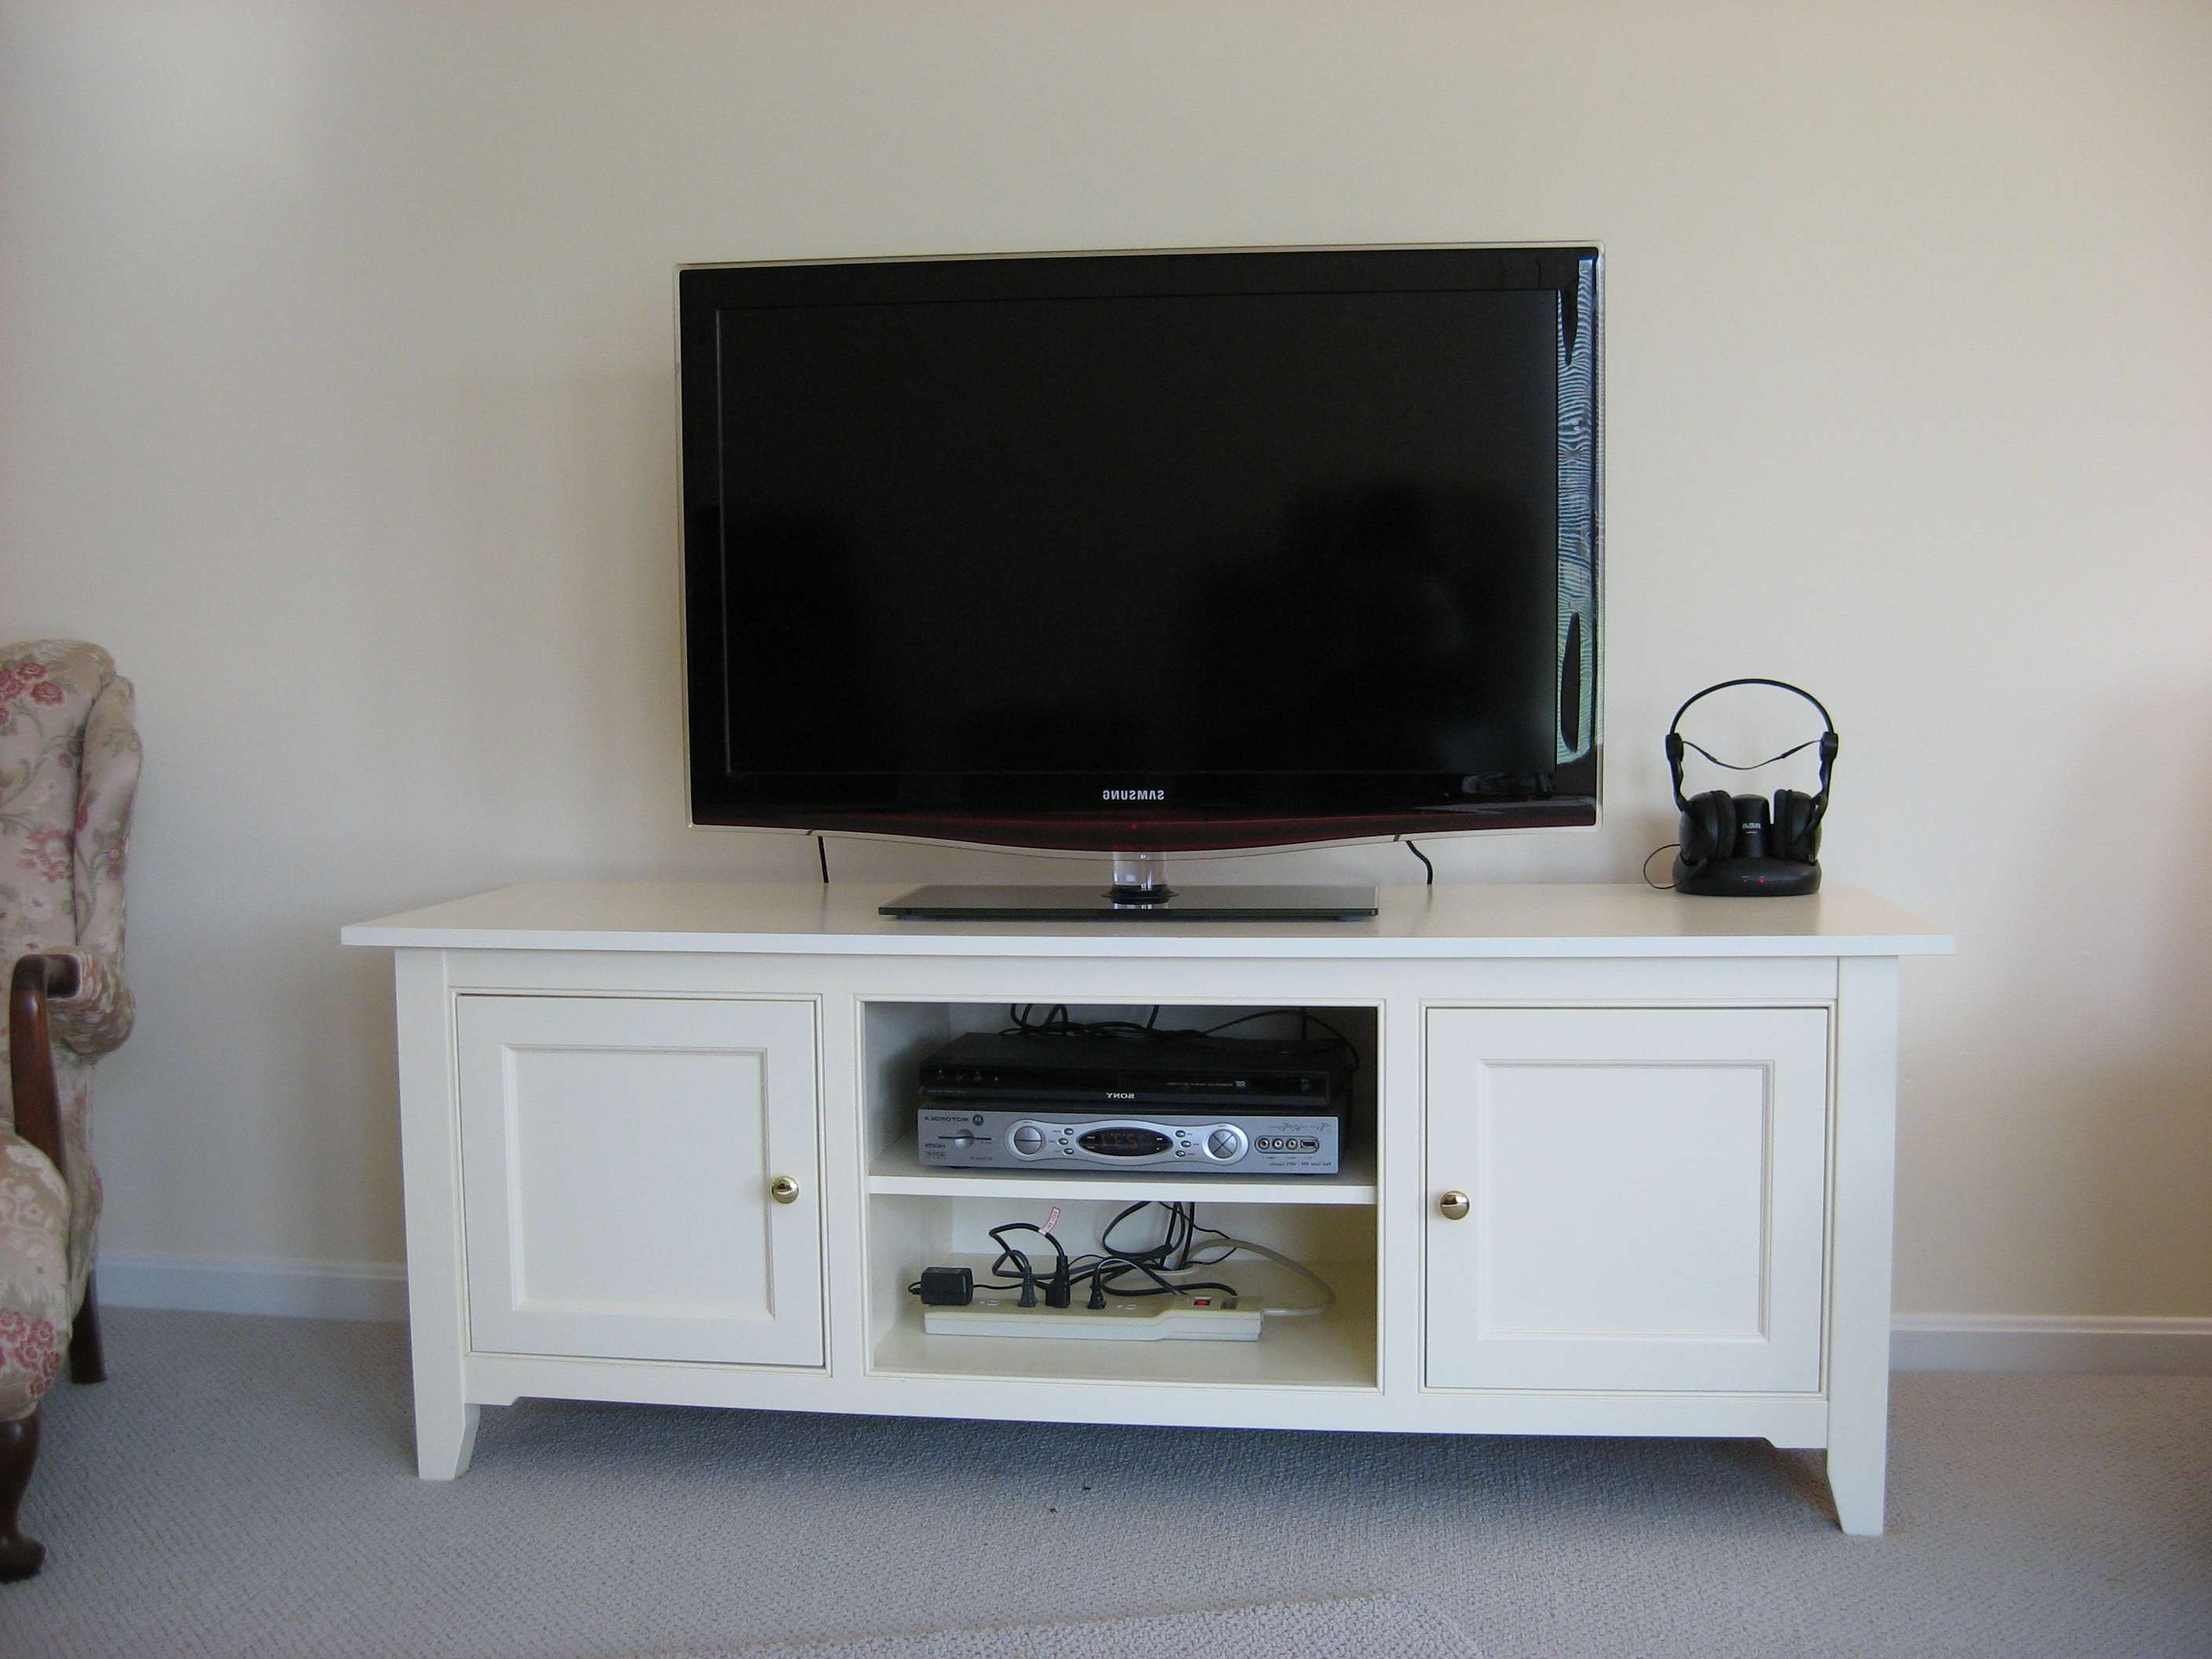 Furniture Black Wooden Tv Stand With Fireplace Having Storage Regarding Tv Cabinets With Storage (View 17 of 20)